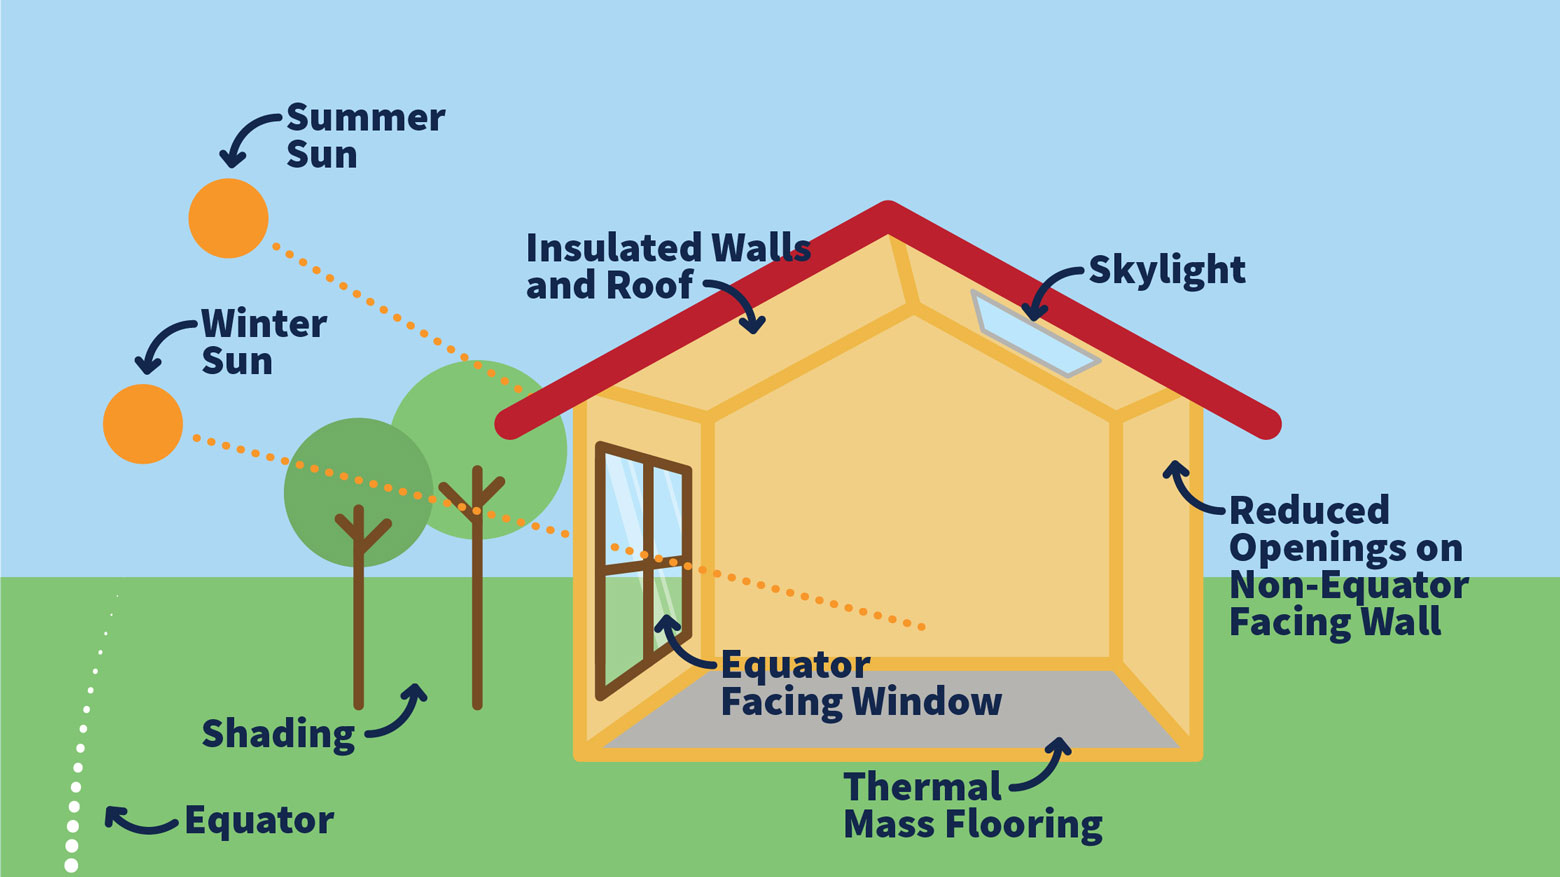 An infographic demonstrating the different methods of passive solar energy